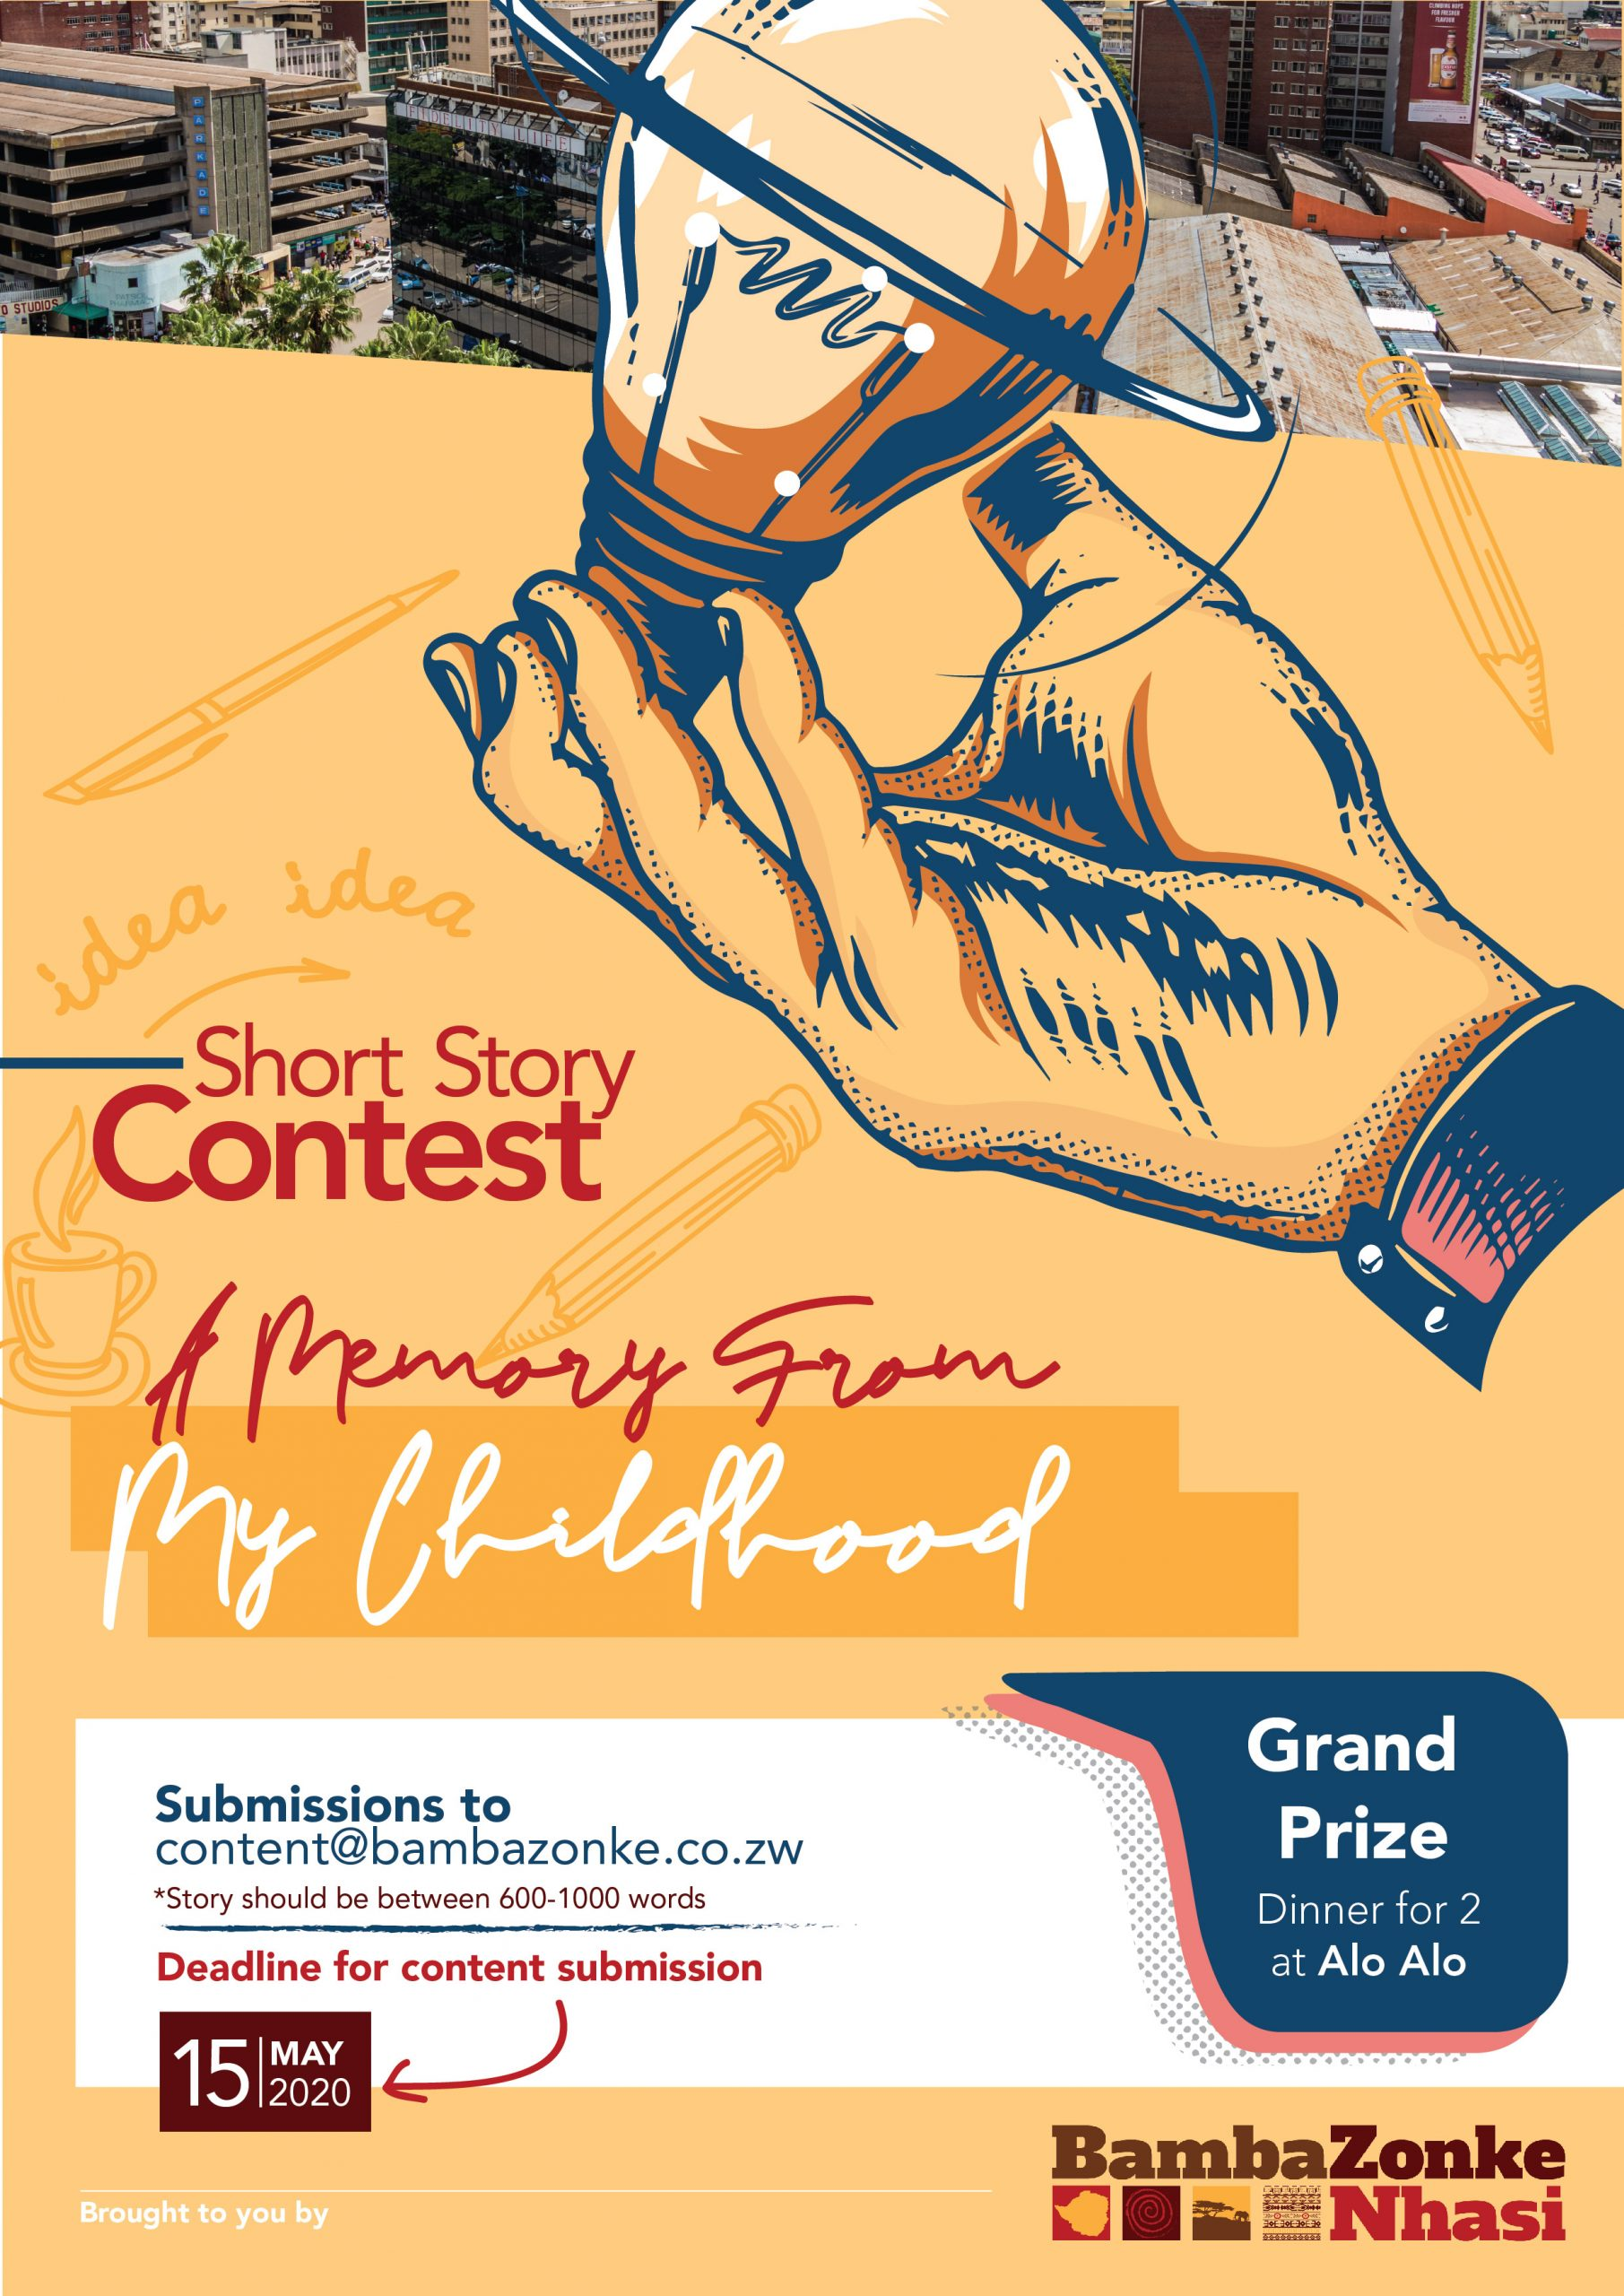 Short Story Contest Poster With Prize